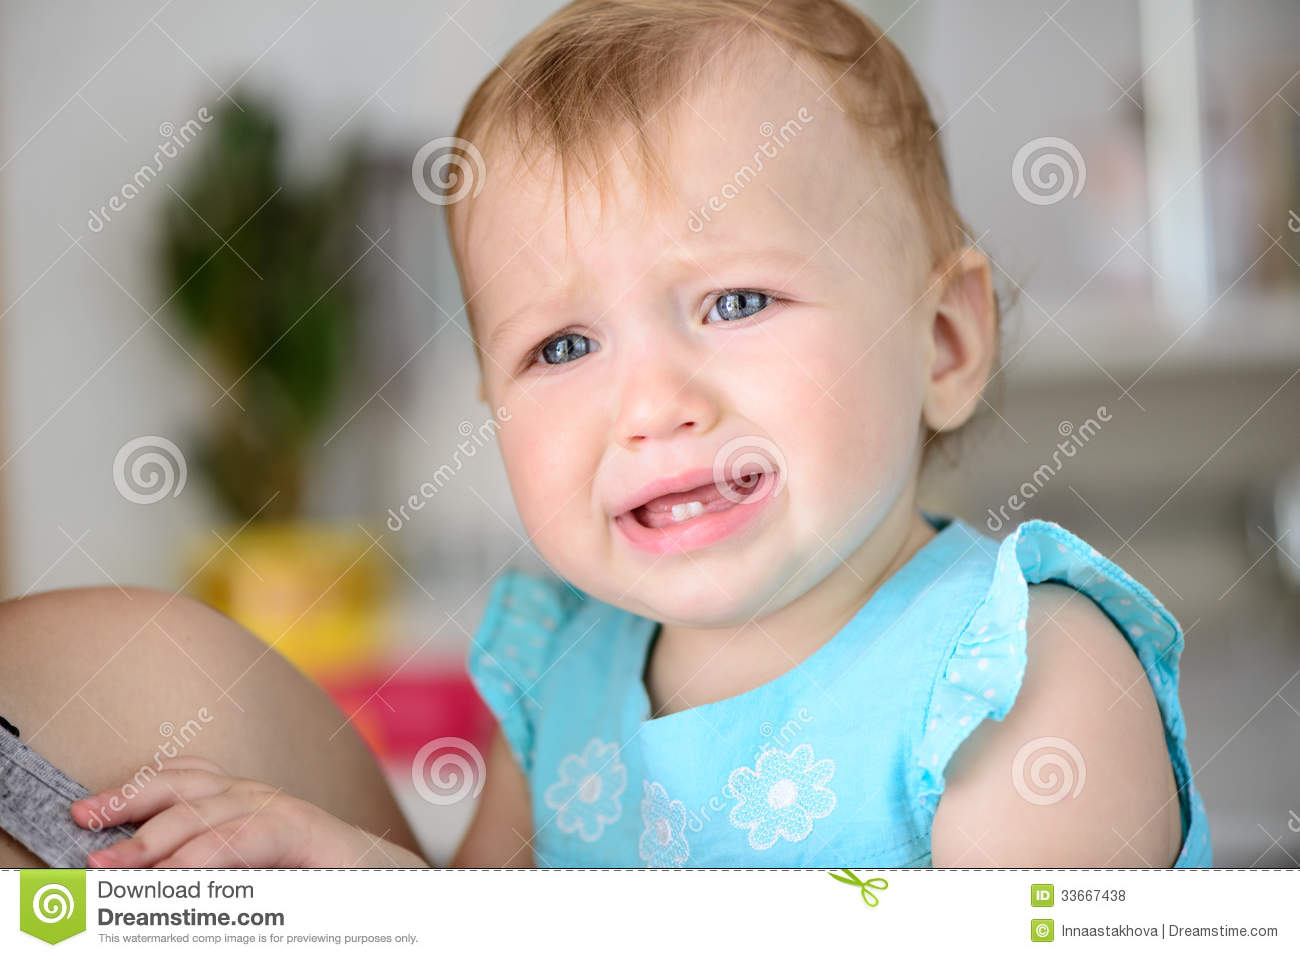 Small baby crying stock photo. Image of crying, colic ...